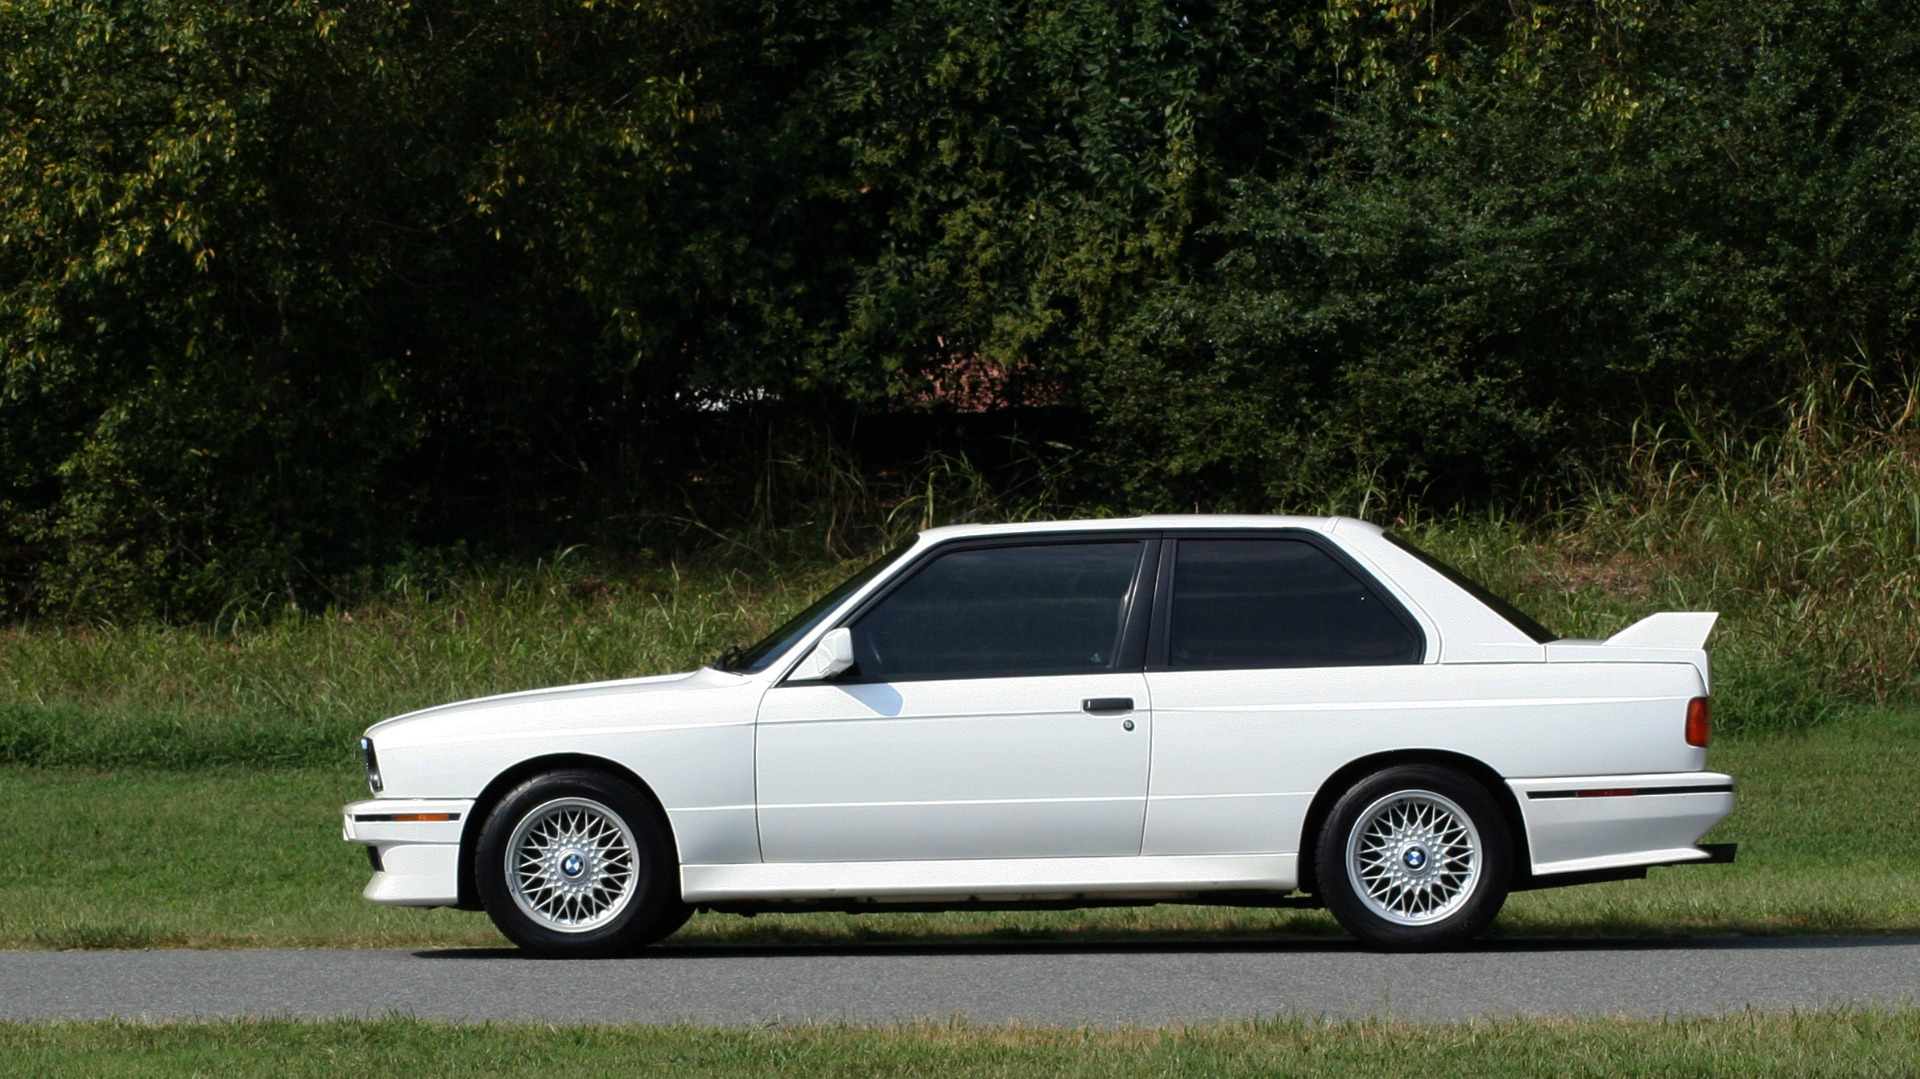 Used 1989 BMW M3 COUPE 2DR / 5-SPEED MAN / LOW MILES / SUPER CLEAN for sale Sold at Formula Imports in Charlotte NC 28227 3